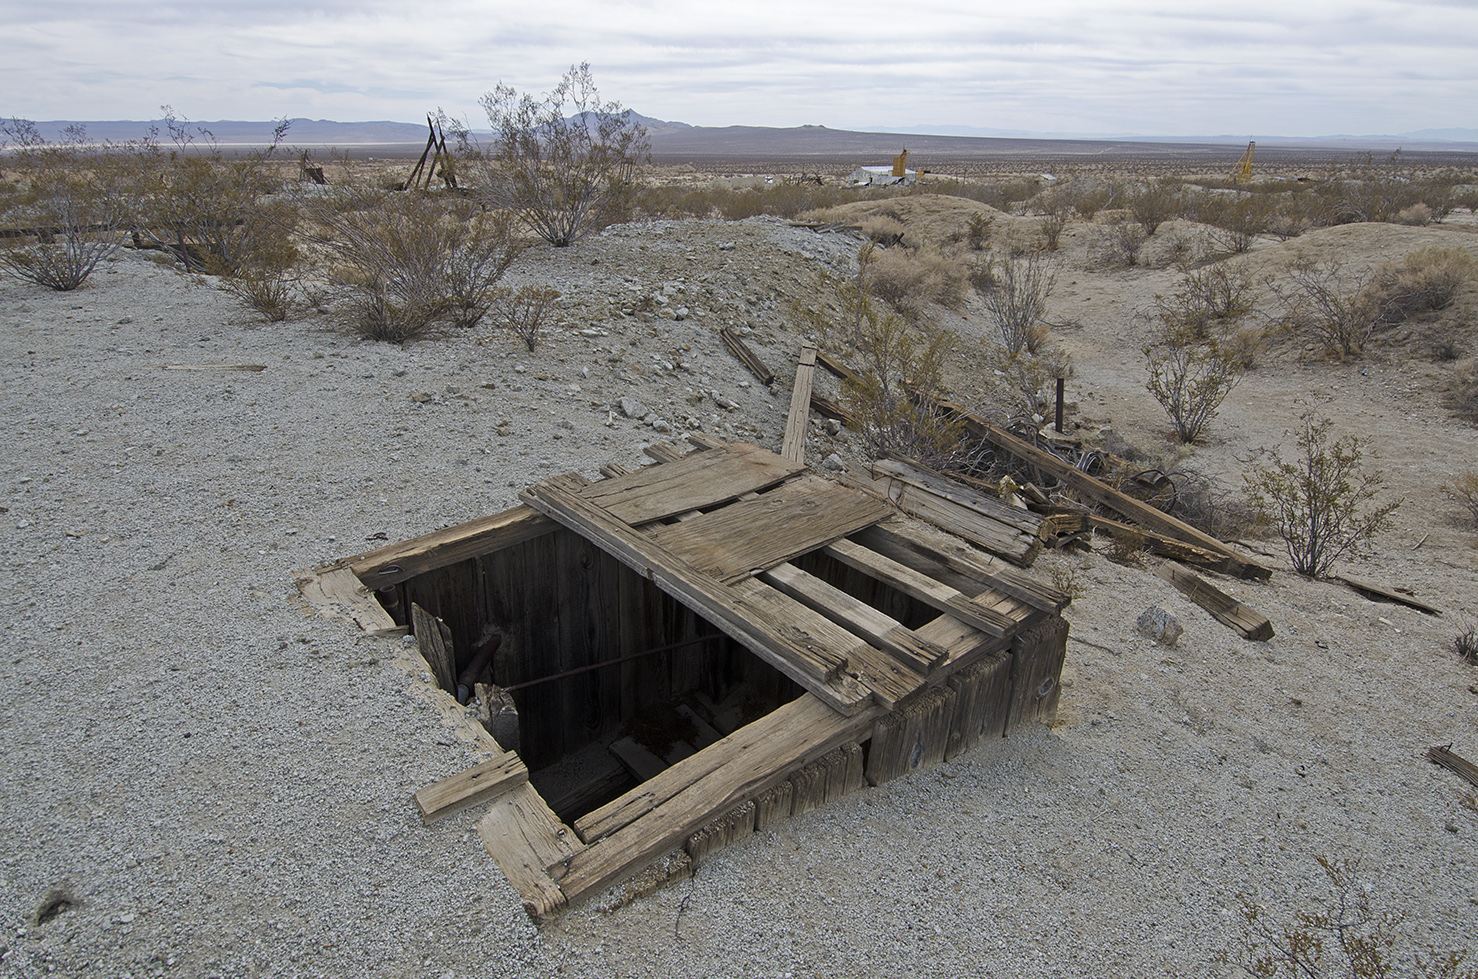 This mine shaft was very near the main highway, and even closer to the dirt road I was on. No protection to keep anyone away.